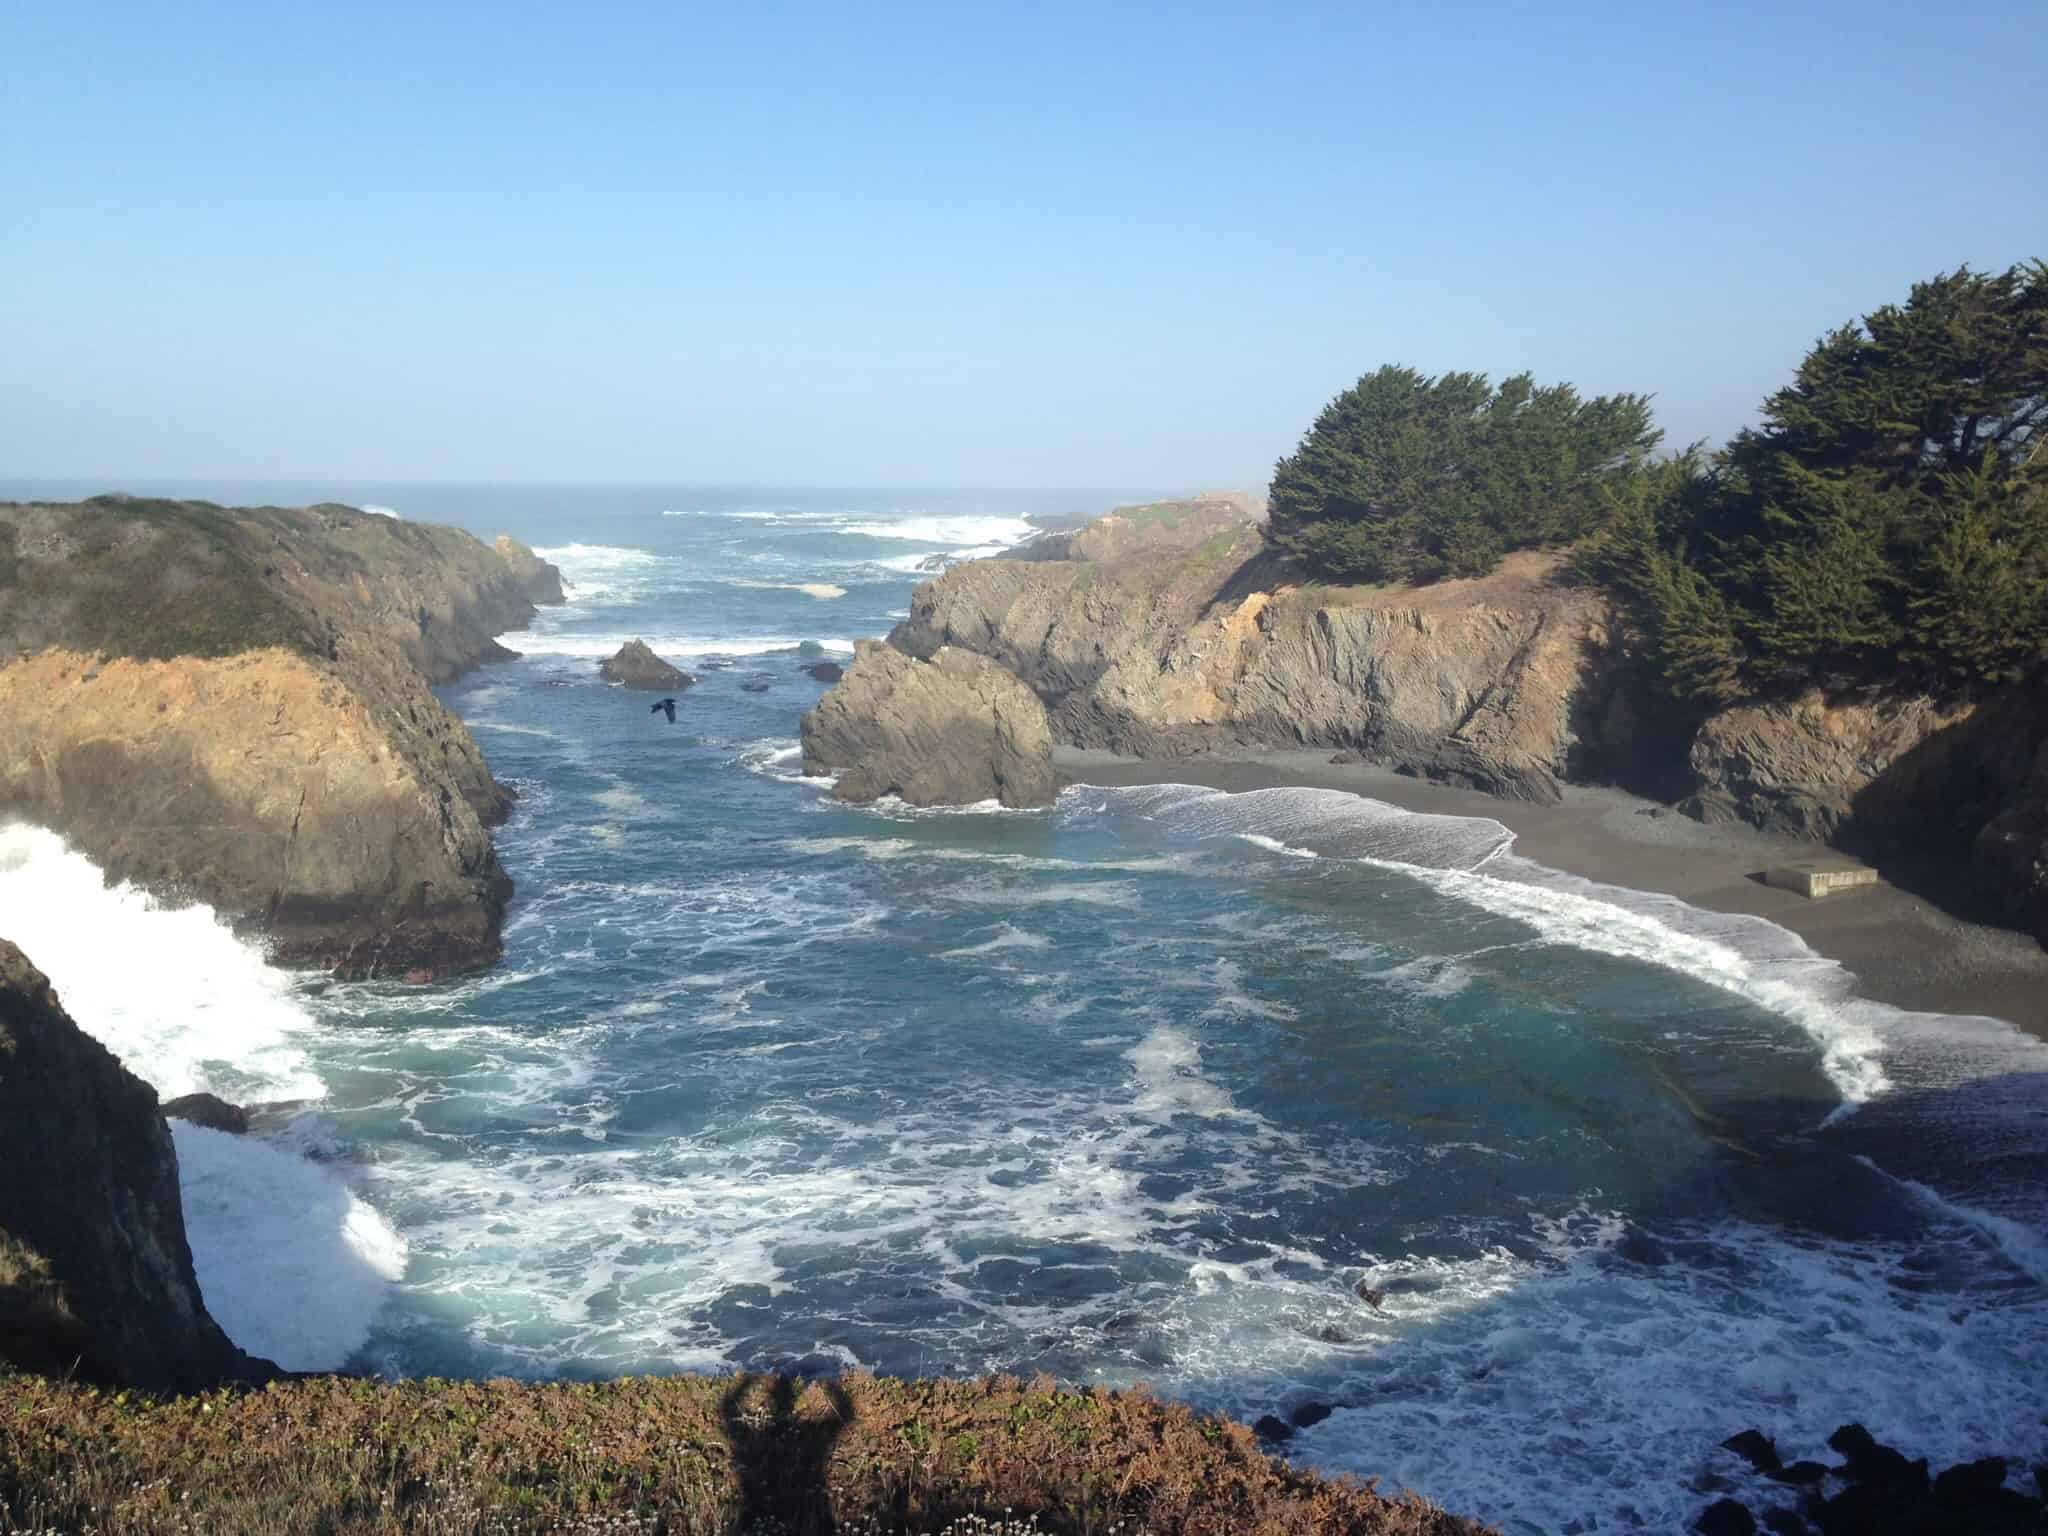 mendocino-headlands-beaches-in-mendocino